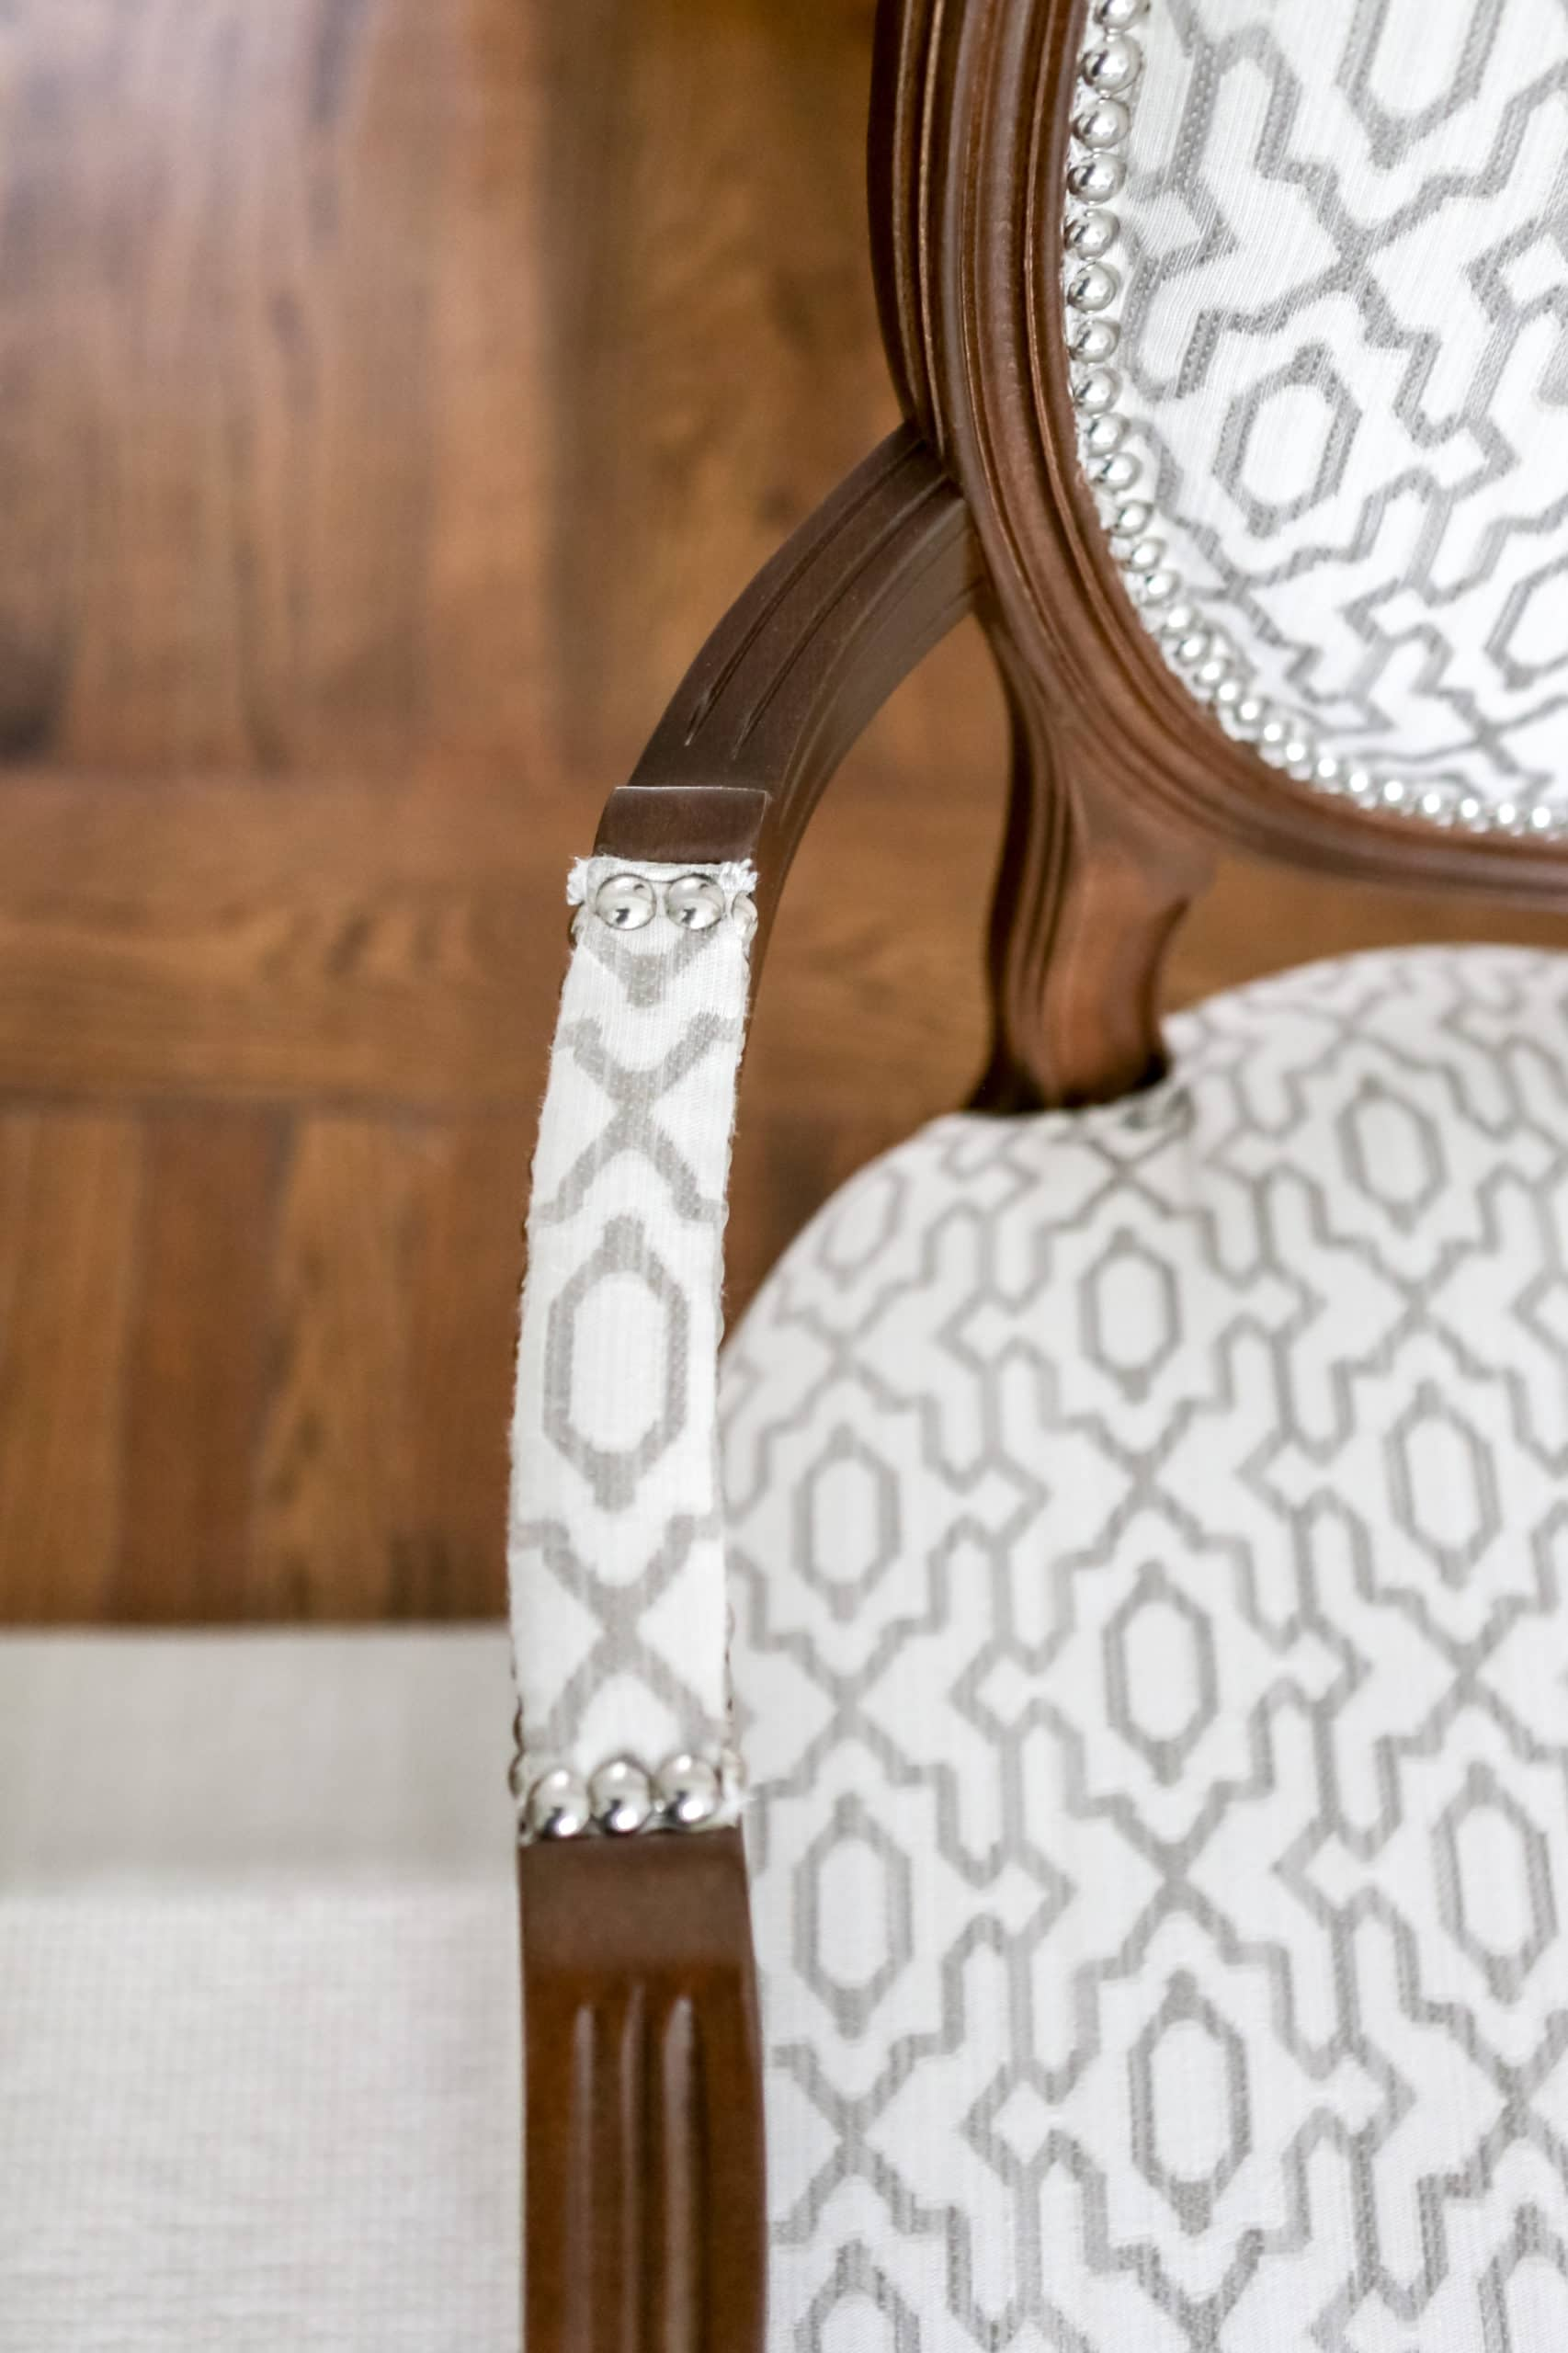 The armrest of a small fancy chair